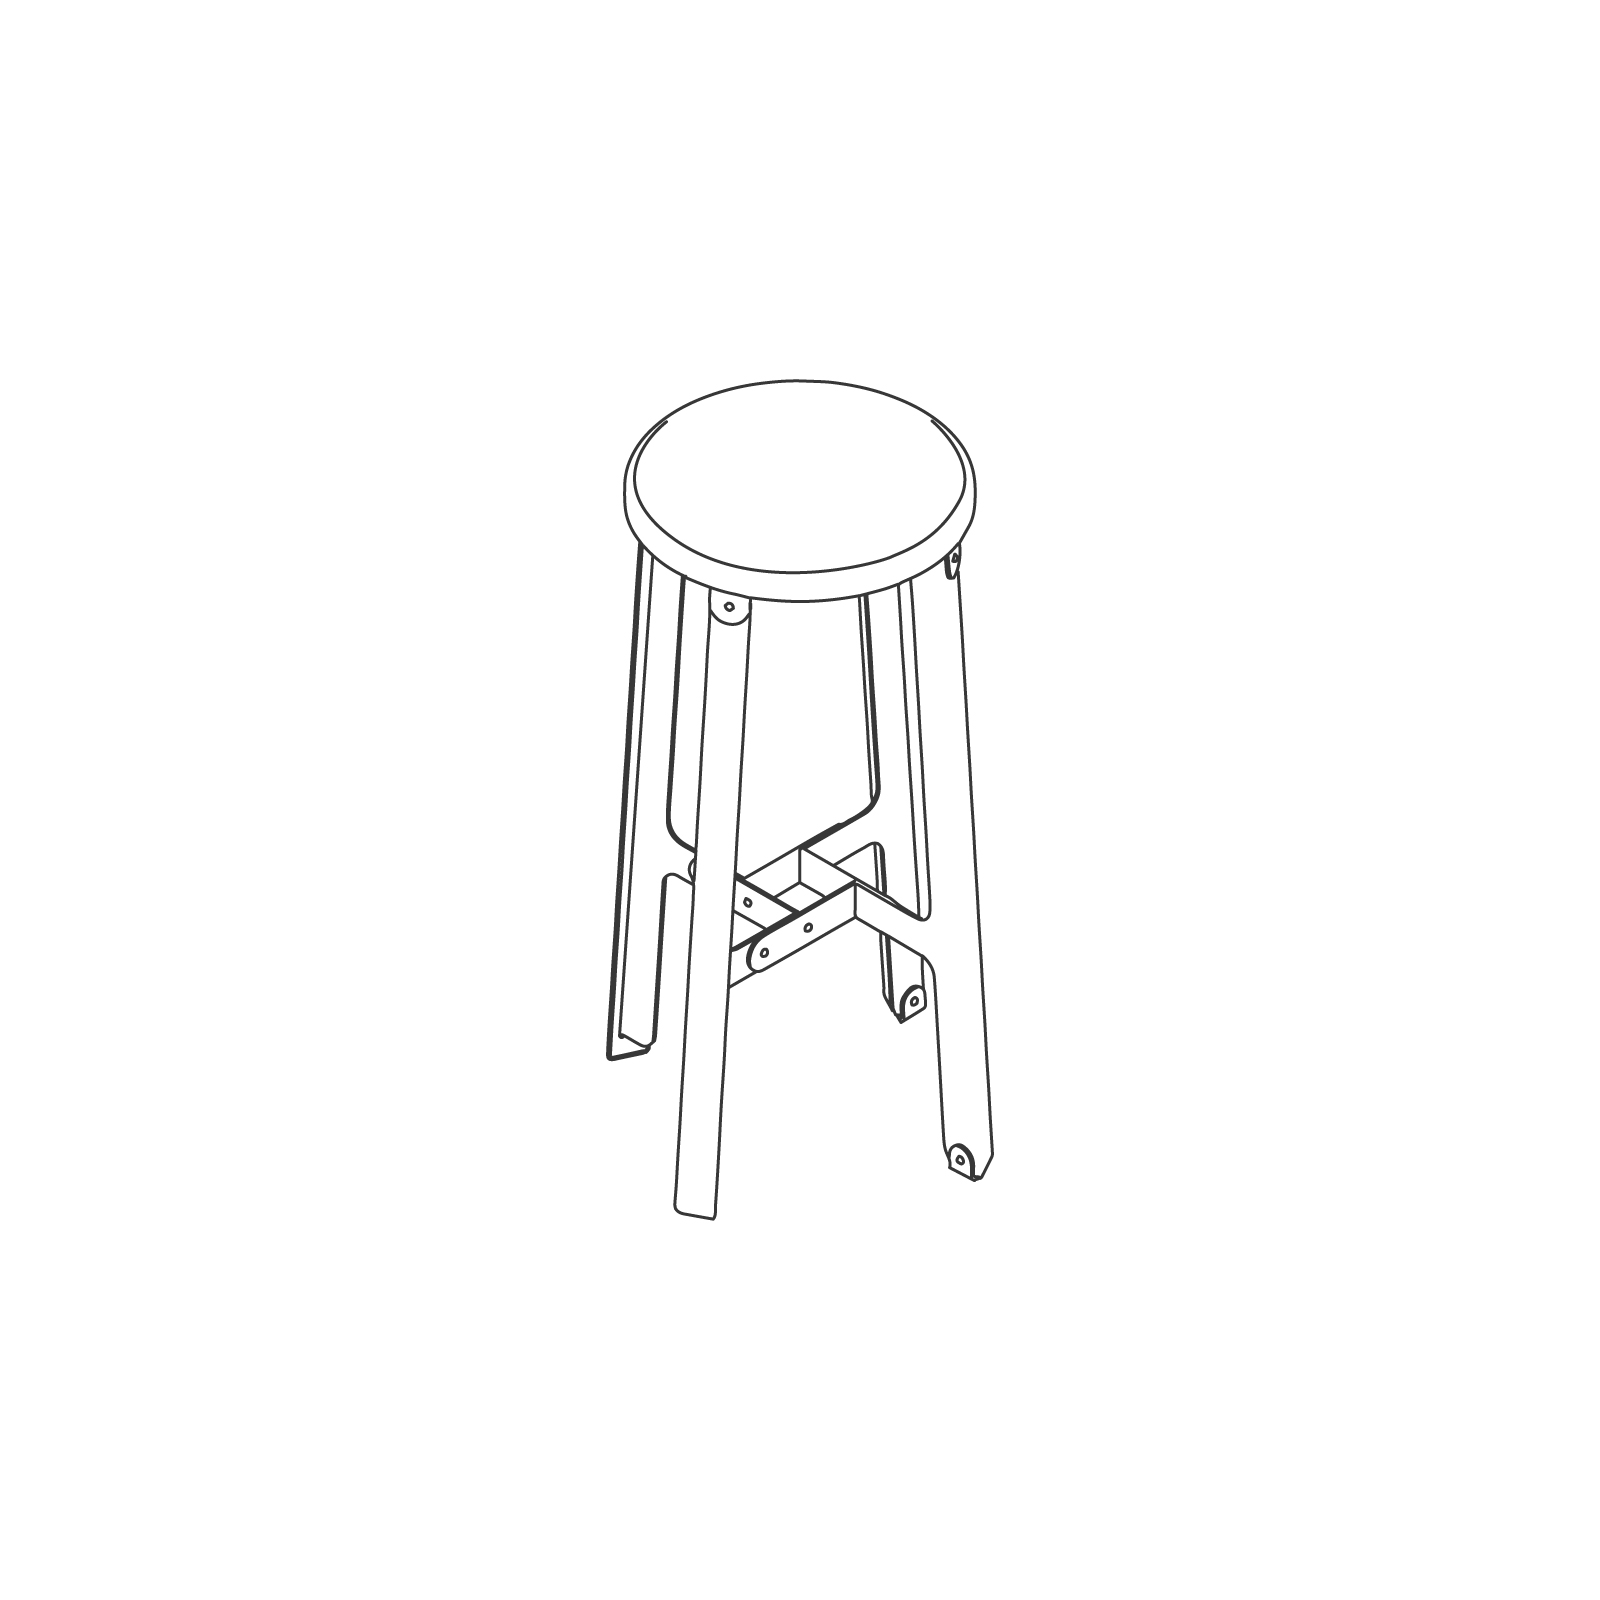 A line drawing of Construct Stool–Counter Height.